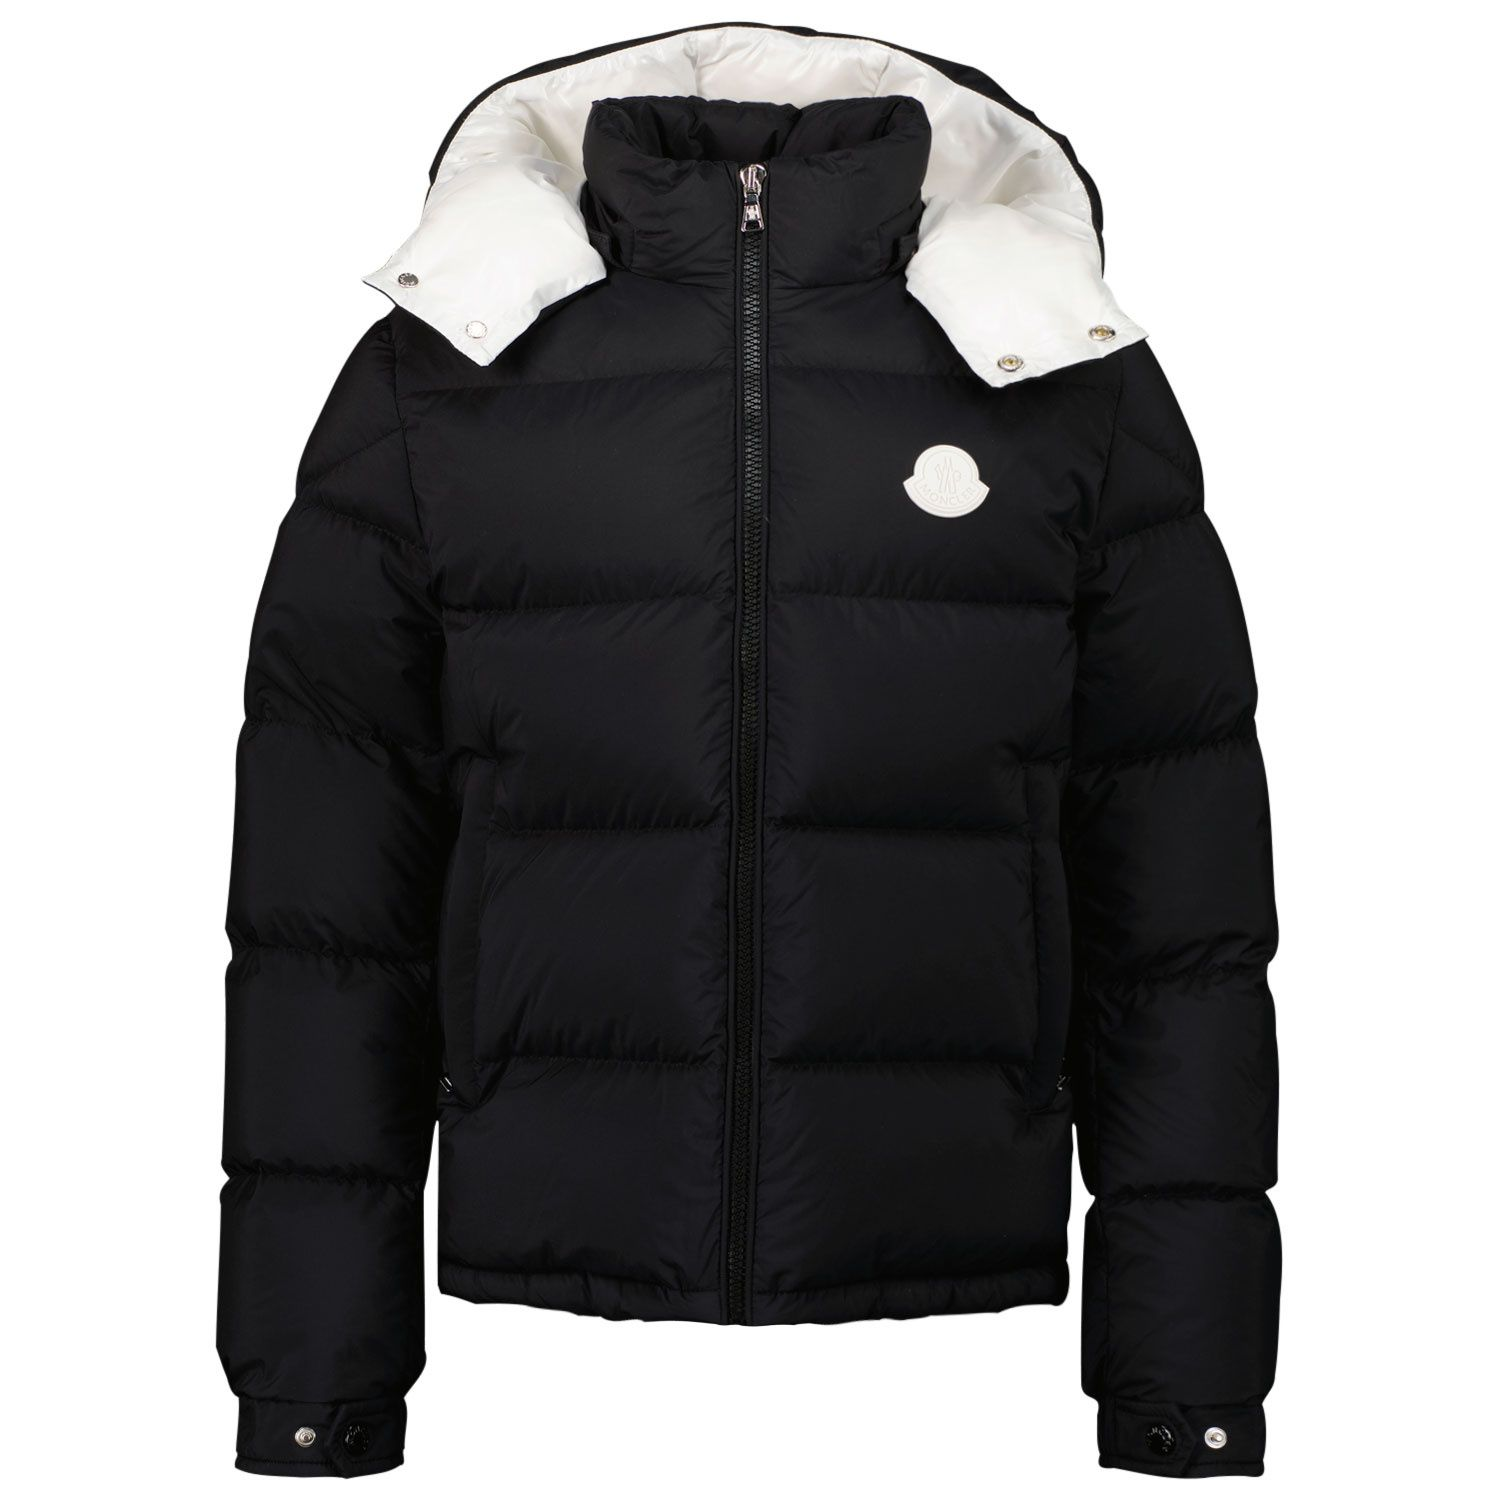 Picture of Moncler 1A53F20 kids jacket black